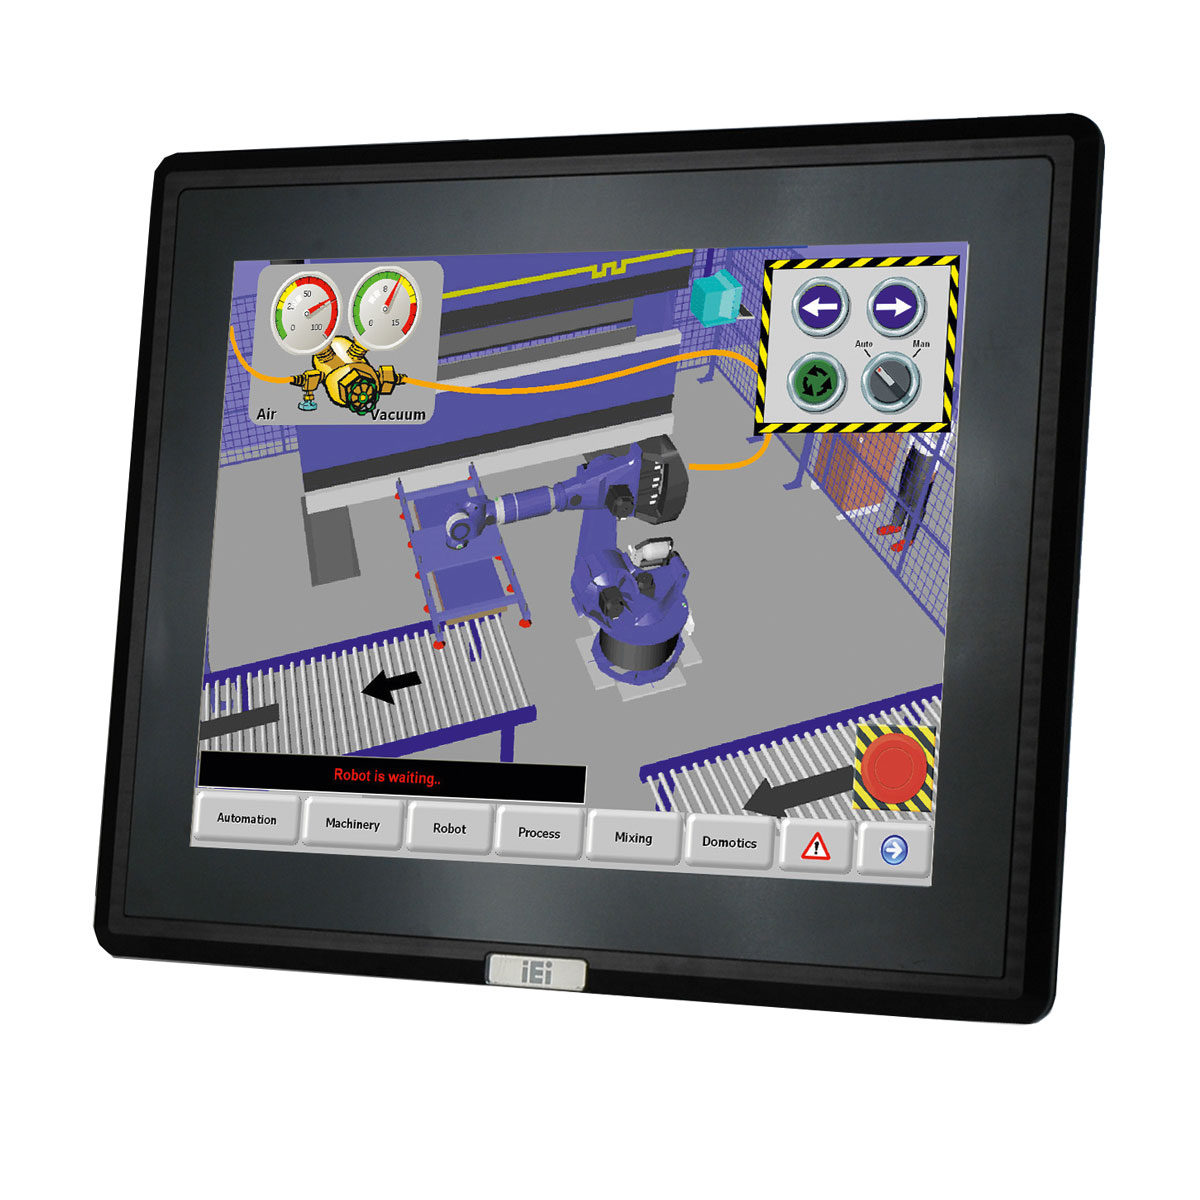 DM-F65A-R-R10-Panel-Monitor buy online at ICPDAS-EUROPE